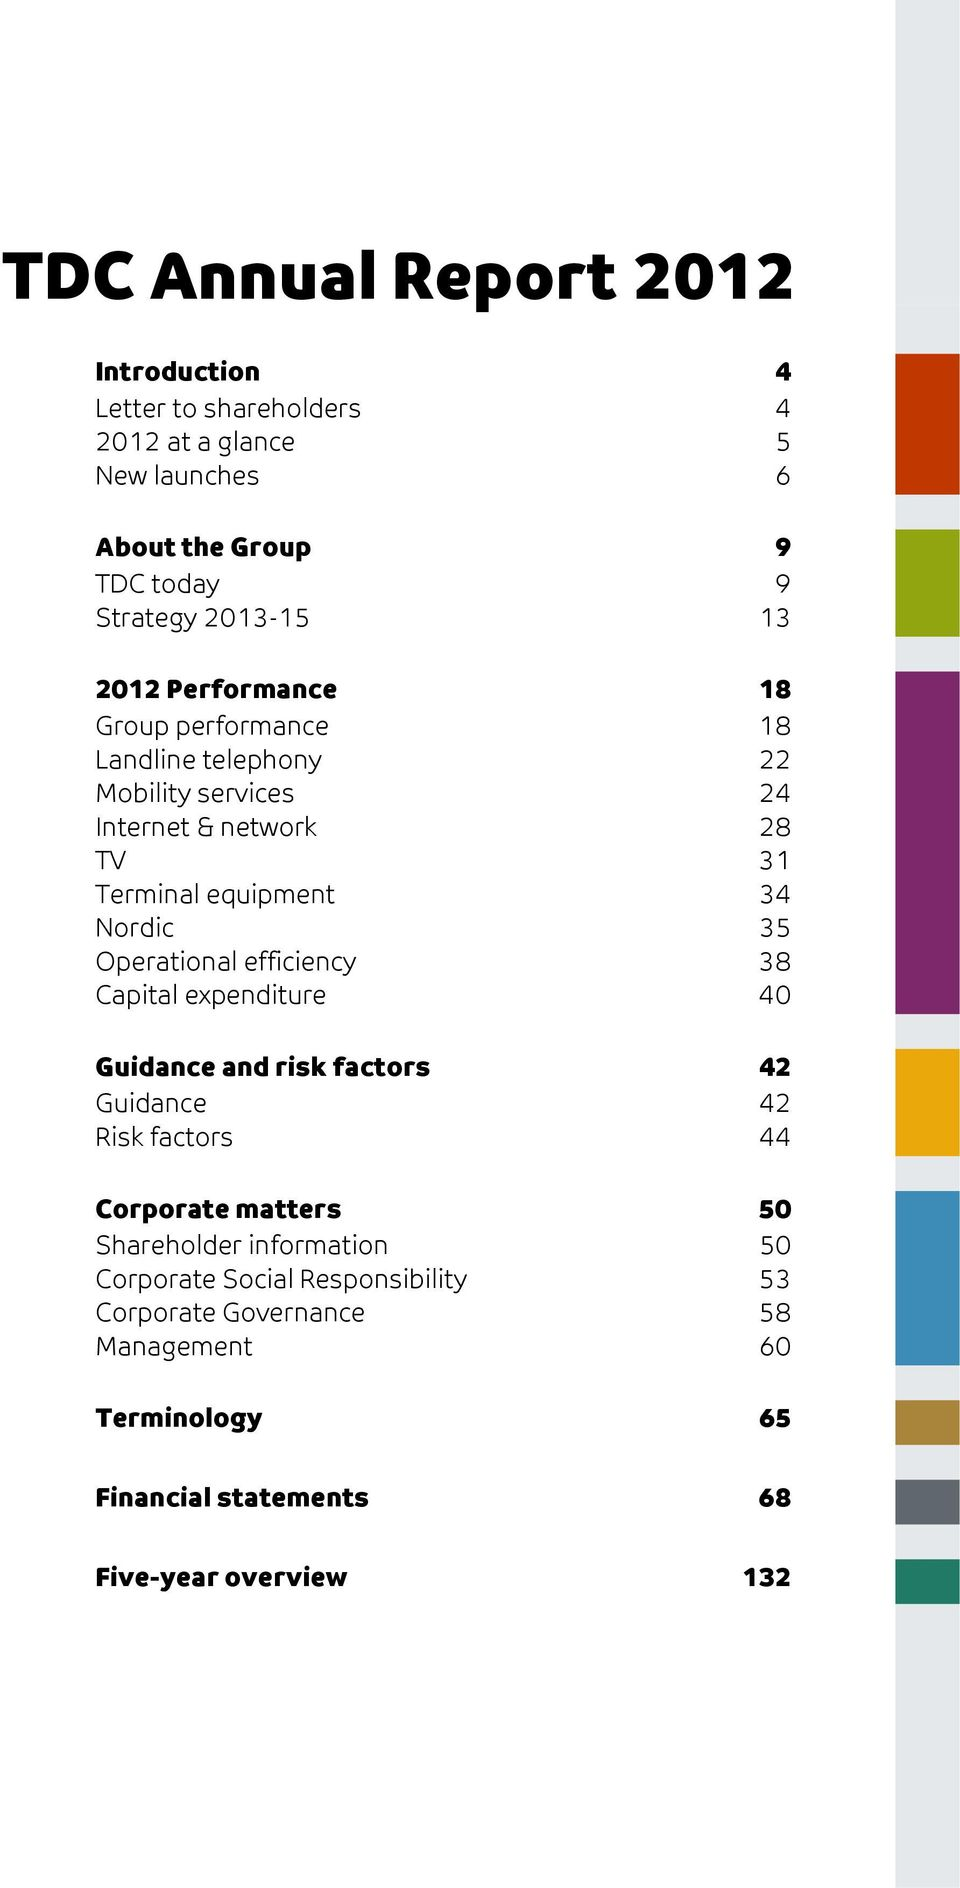 35 Operational efficiency 38 Capital expenditure 40 Guidance and risk factors 42 Guidance 42 Risk factors 44 Corporate matters 50 Shareholder